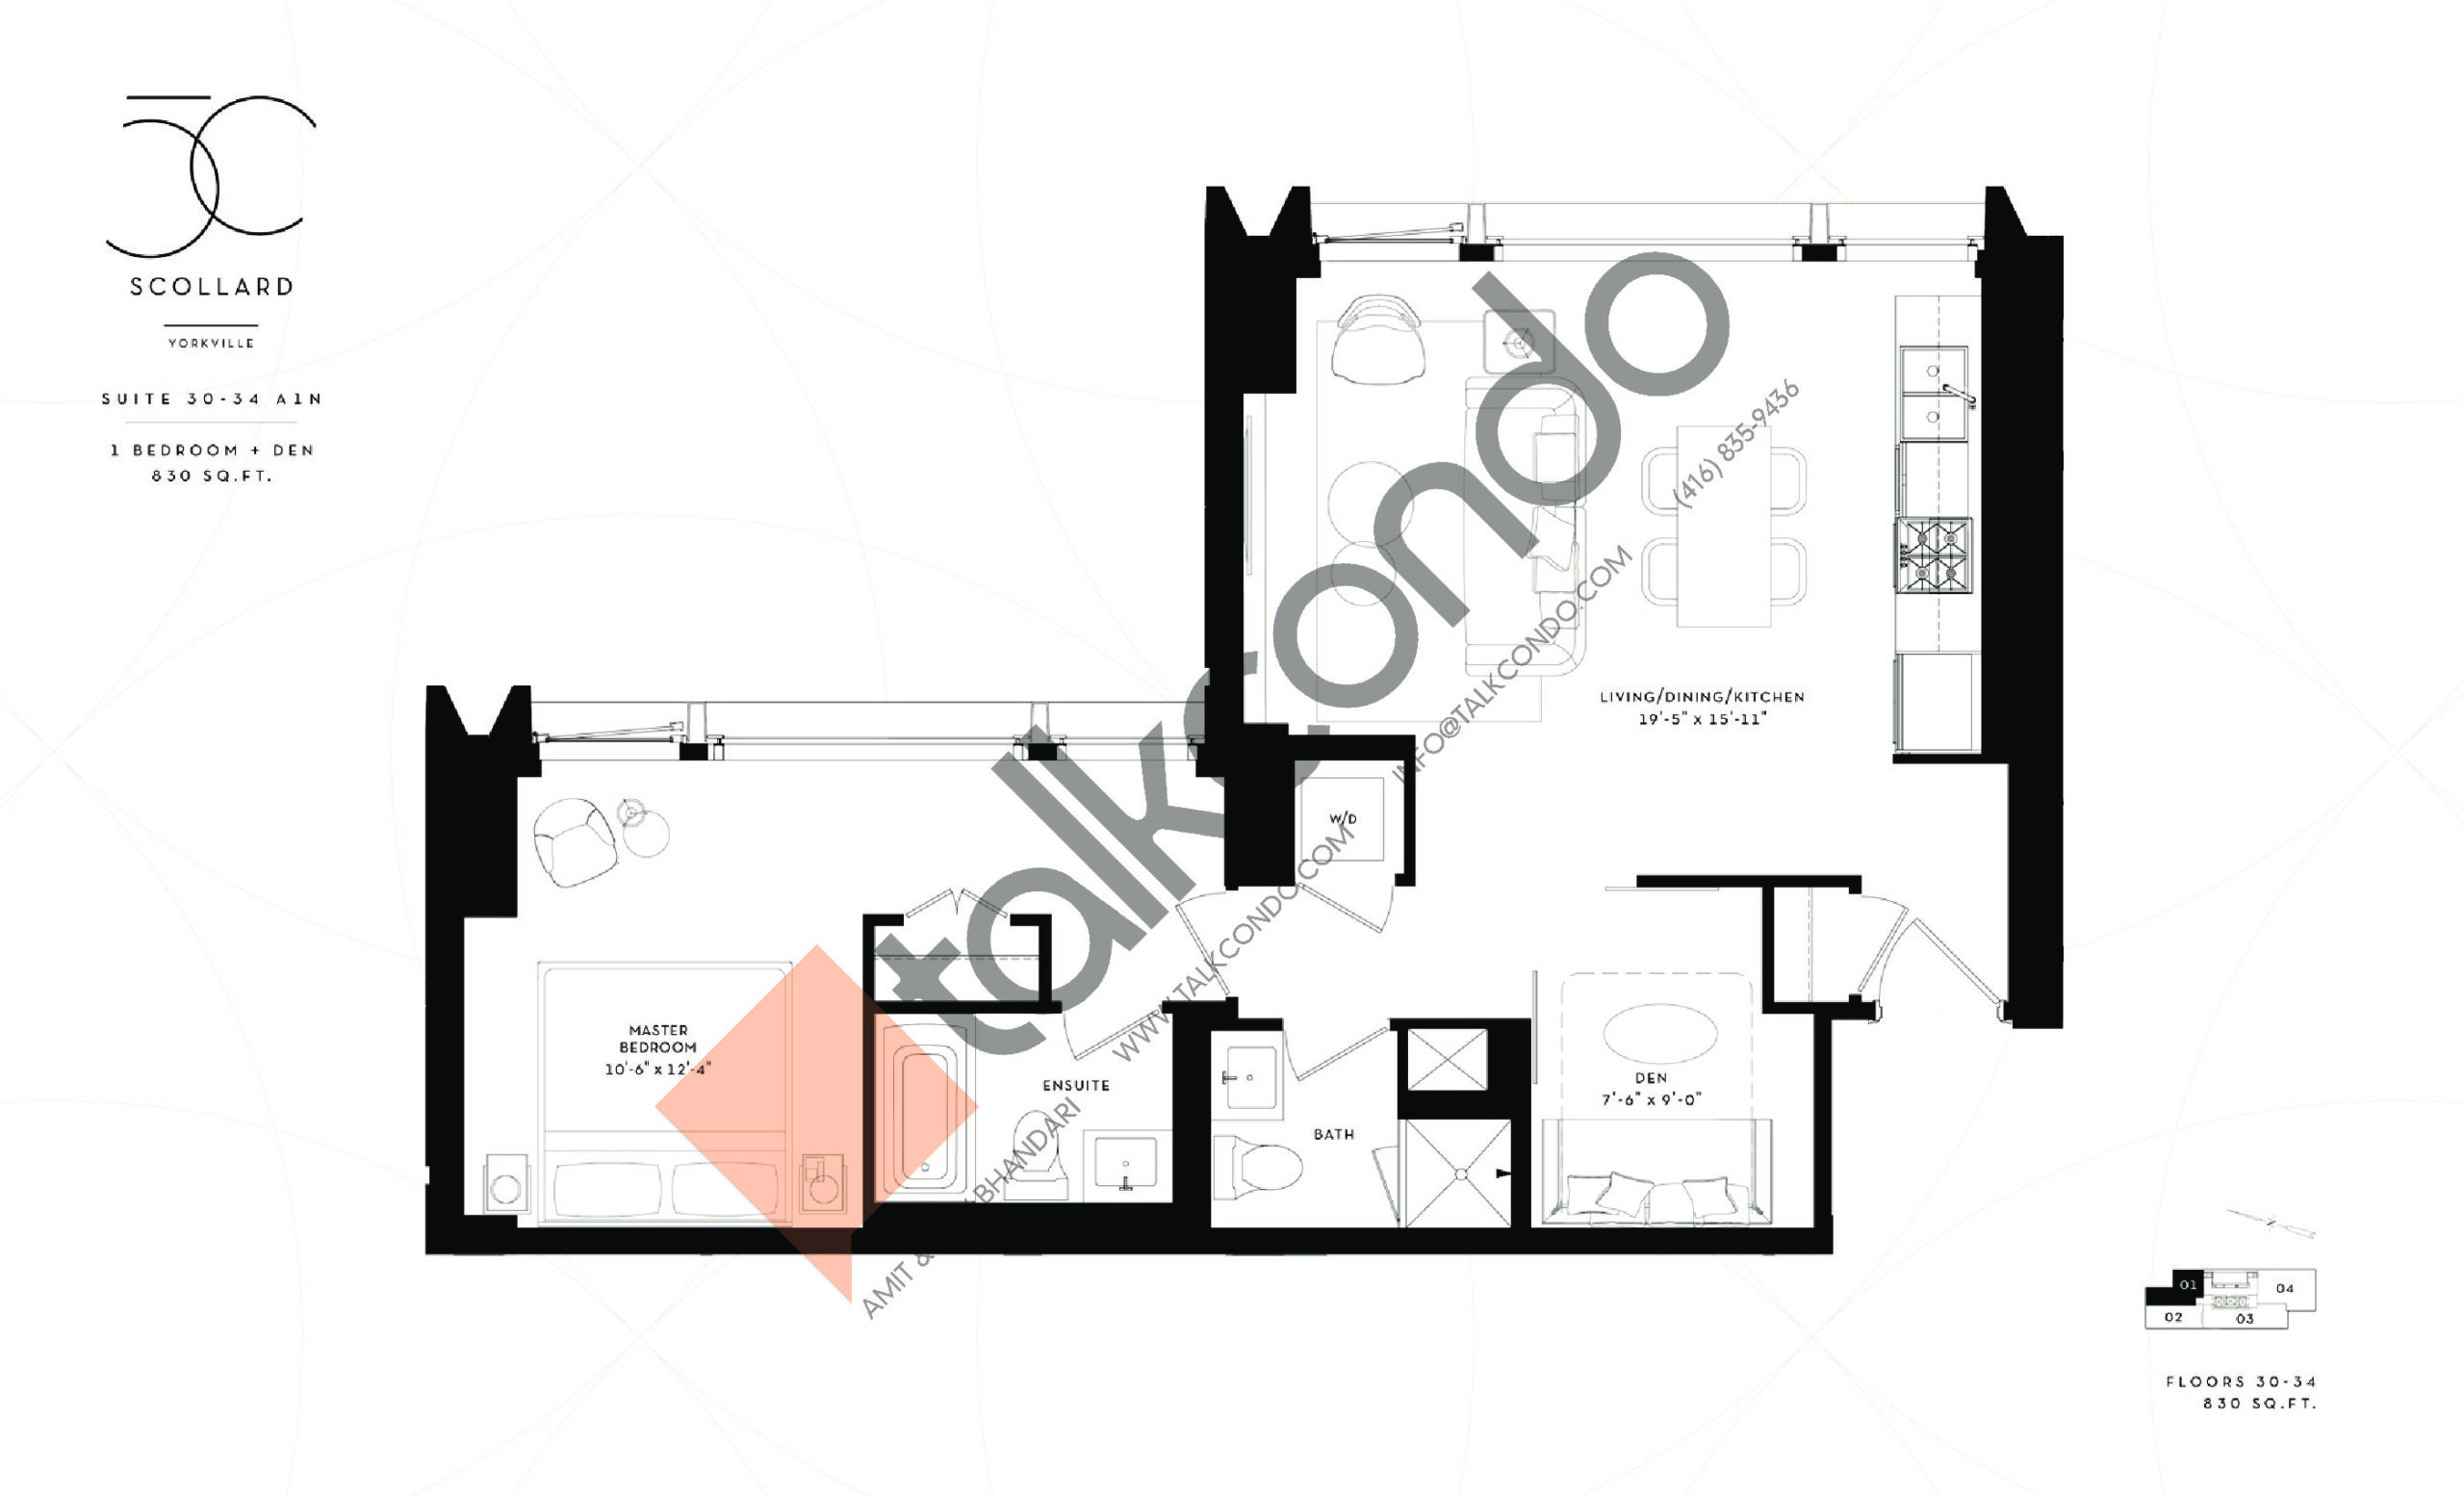 Suite 30-34 A1N Floor Plan at Fifty Scollard Condos - 830 sq.ft